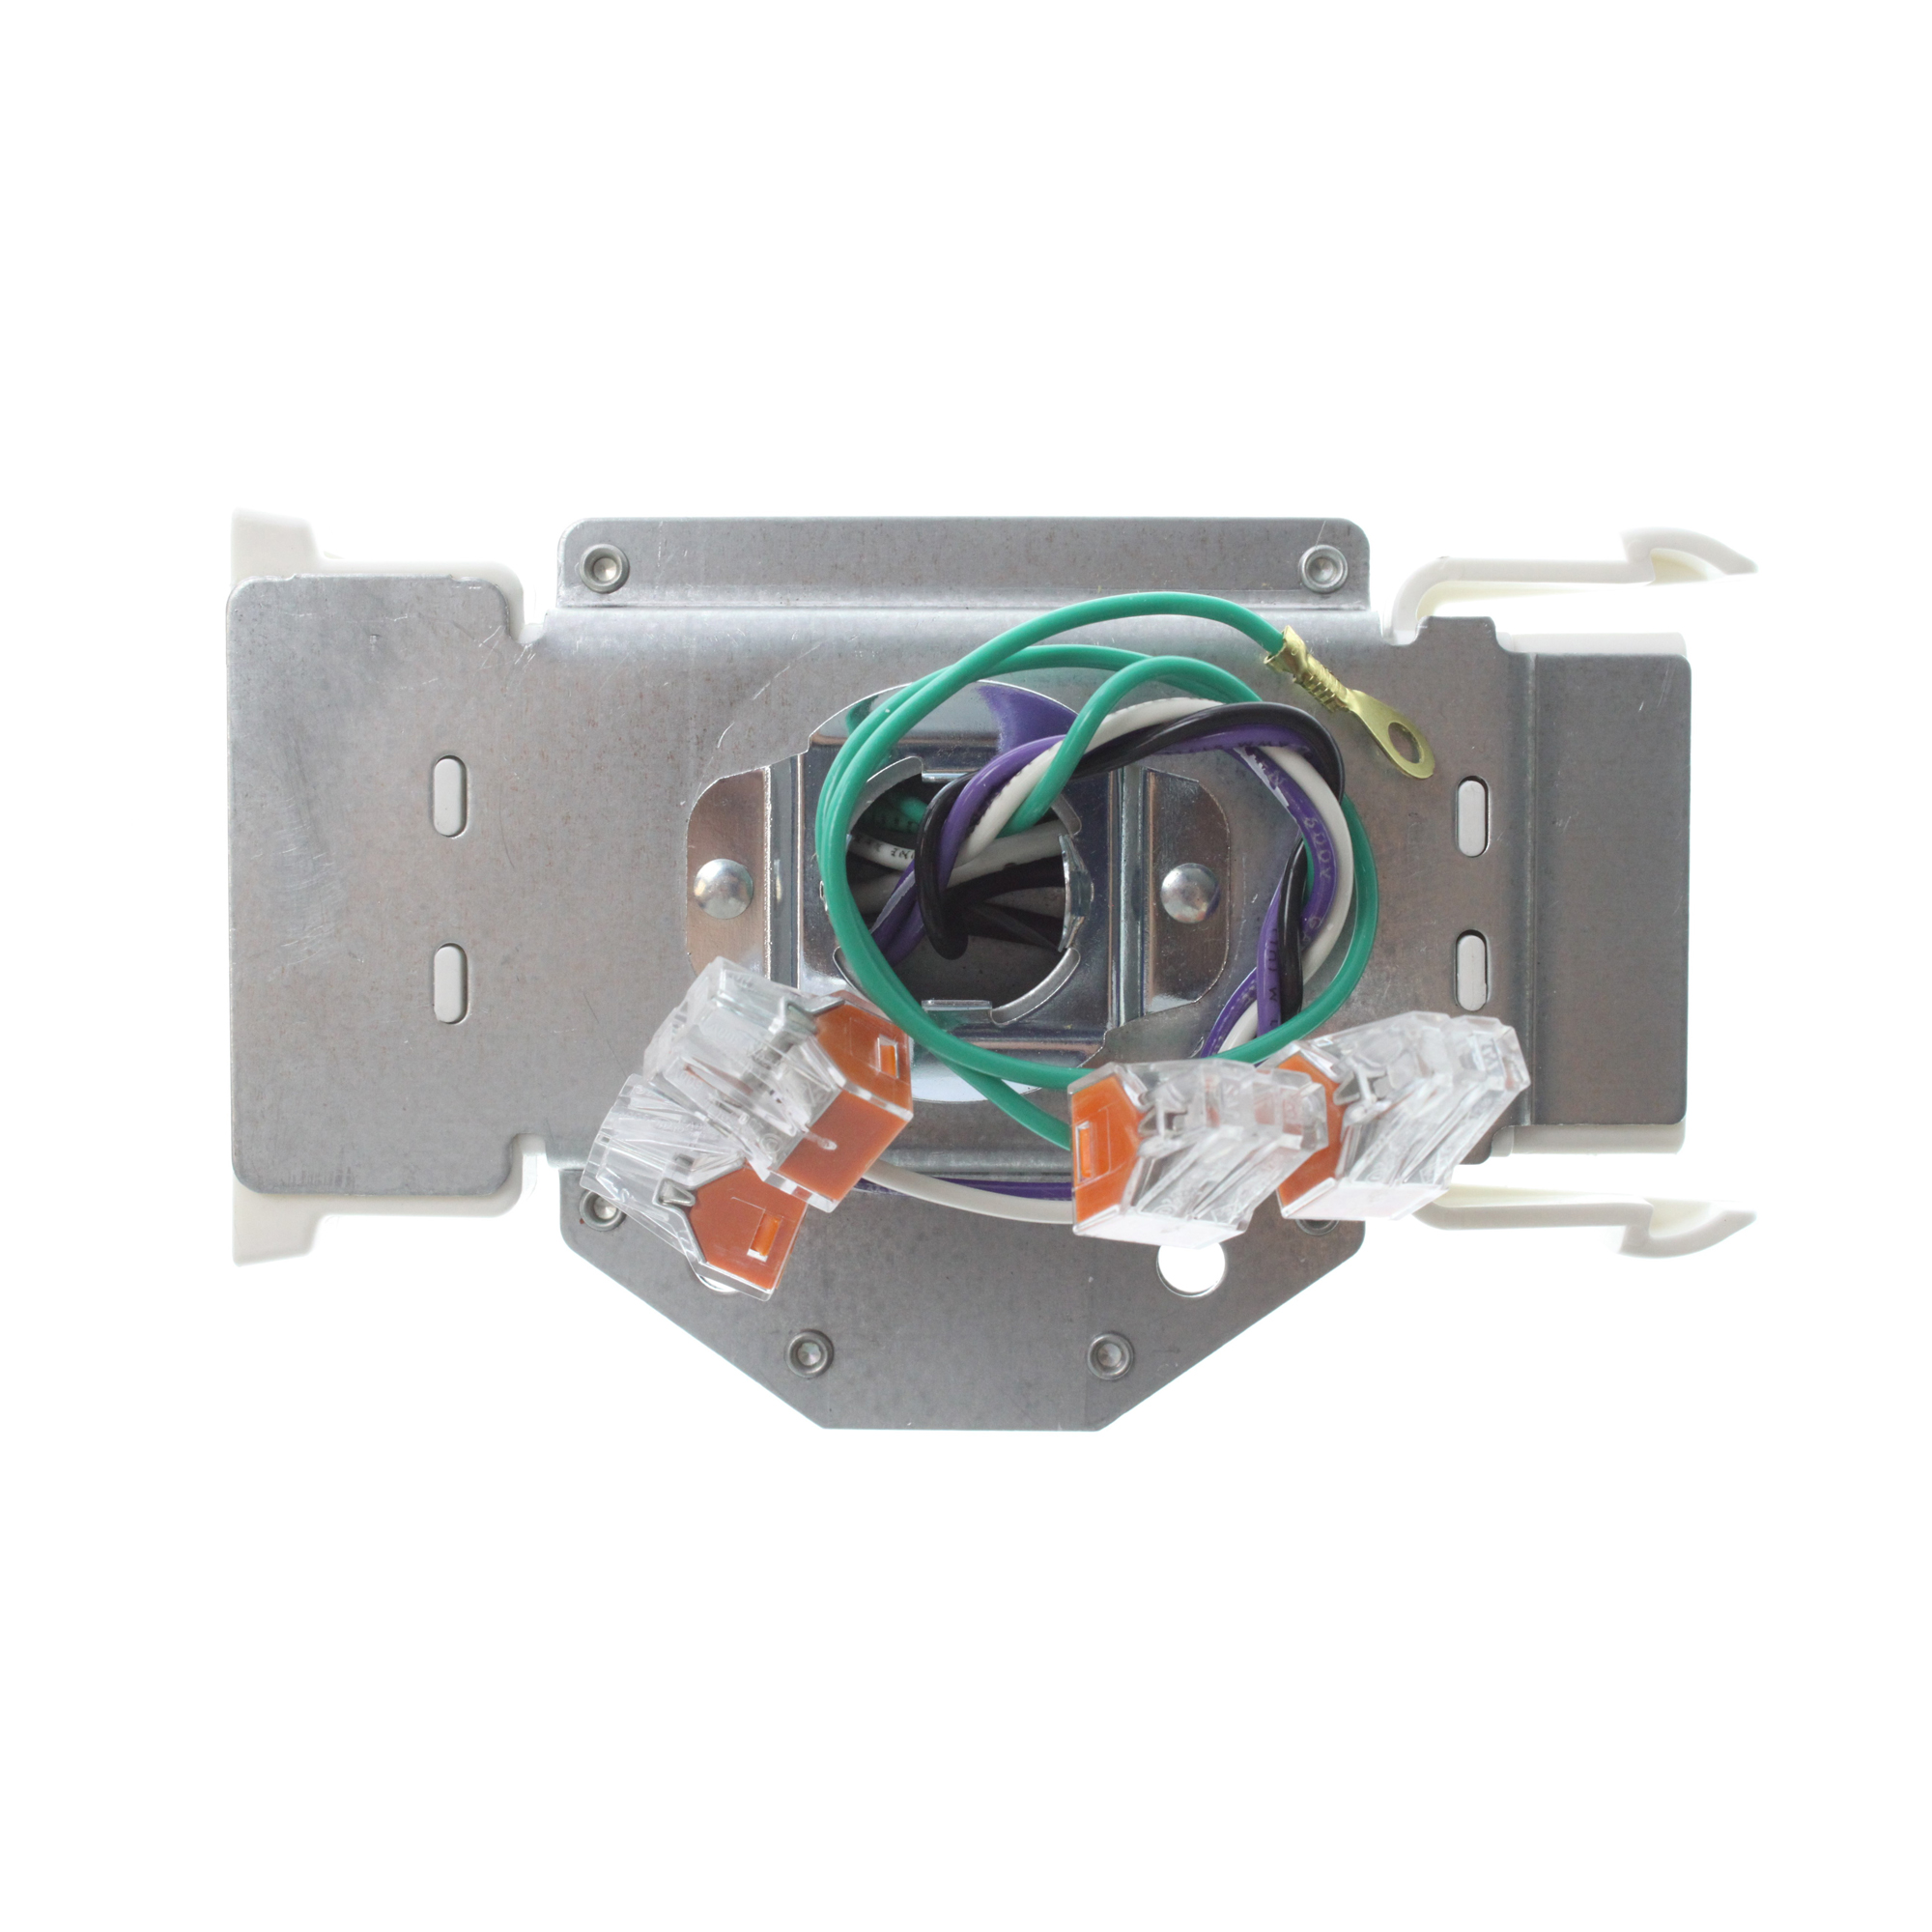 COOPER MWS 27FF12/4G5LT MODULAR WIRING SYSTEM FIXTURE CONNECTOR ...